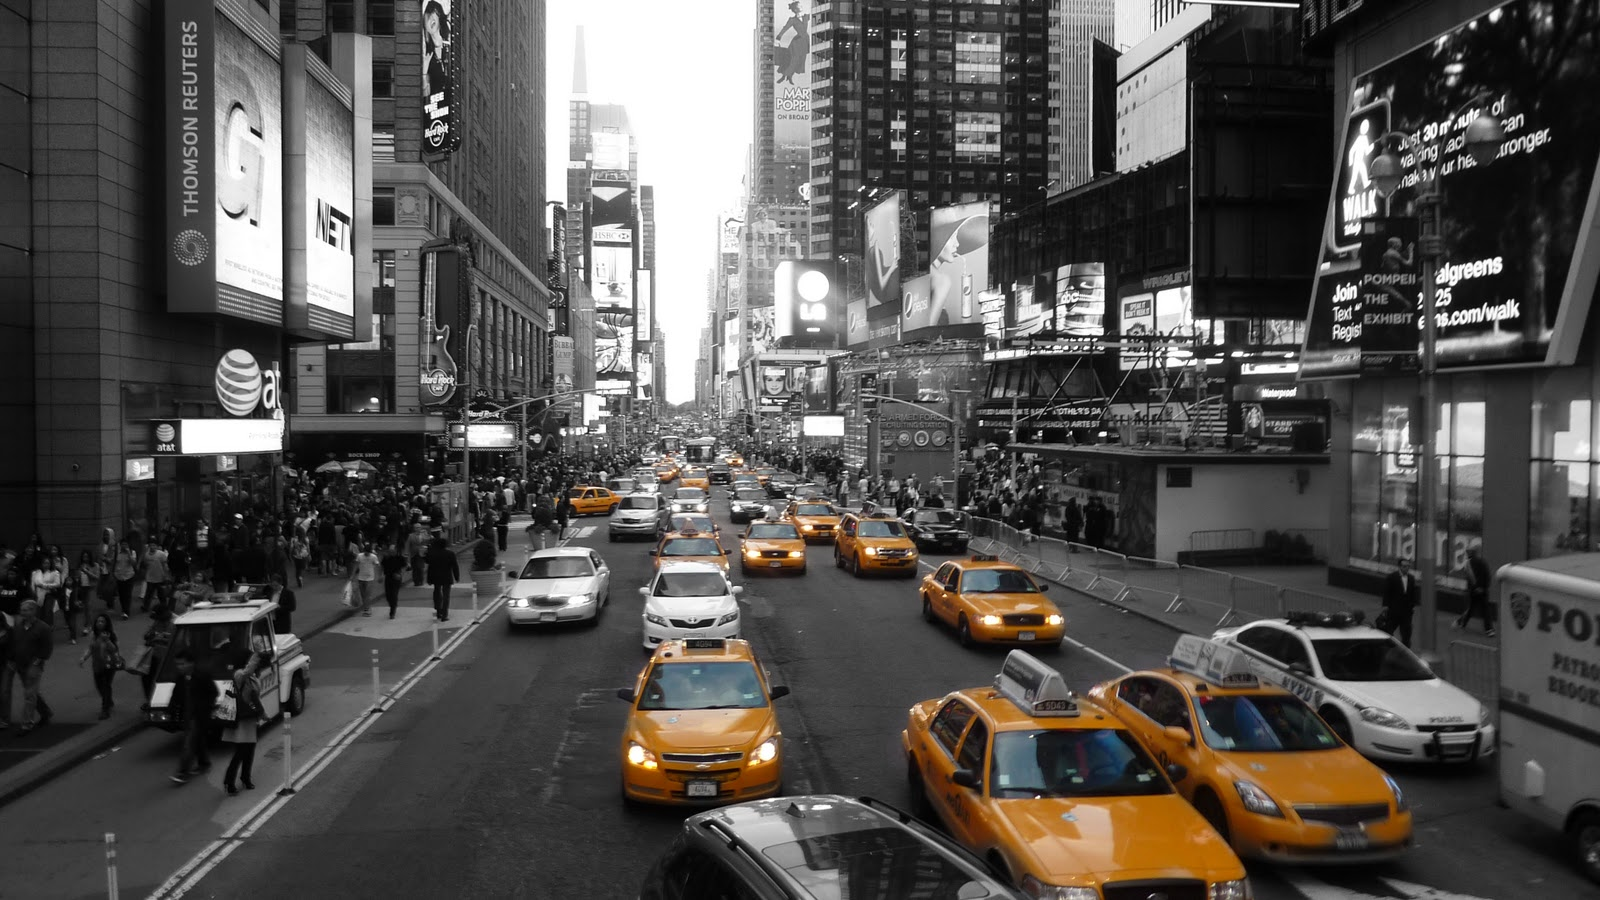 New York background image Cities wallpapers 1600x900